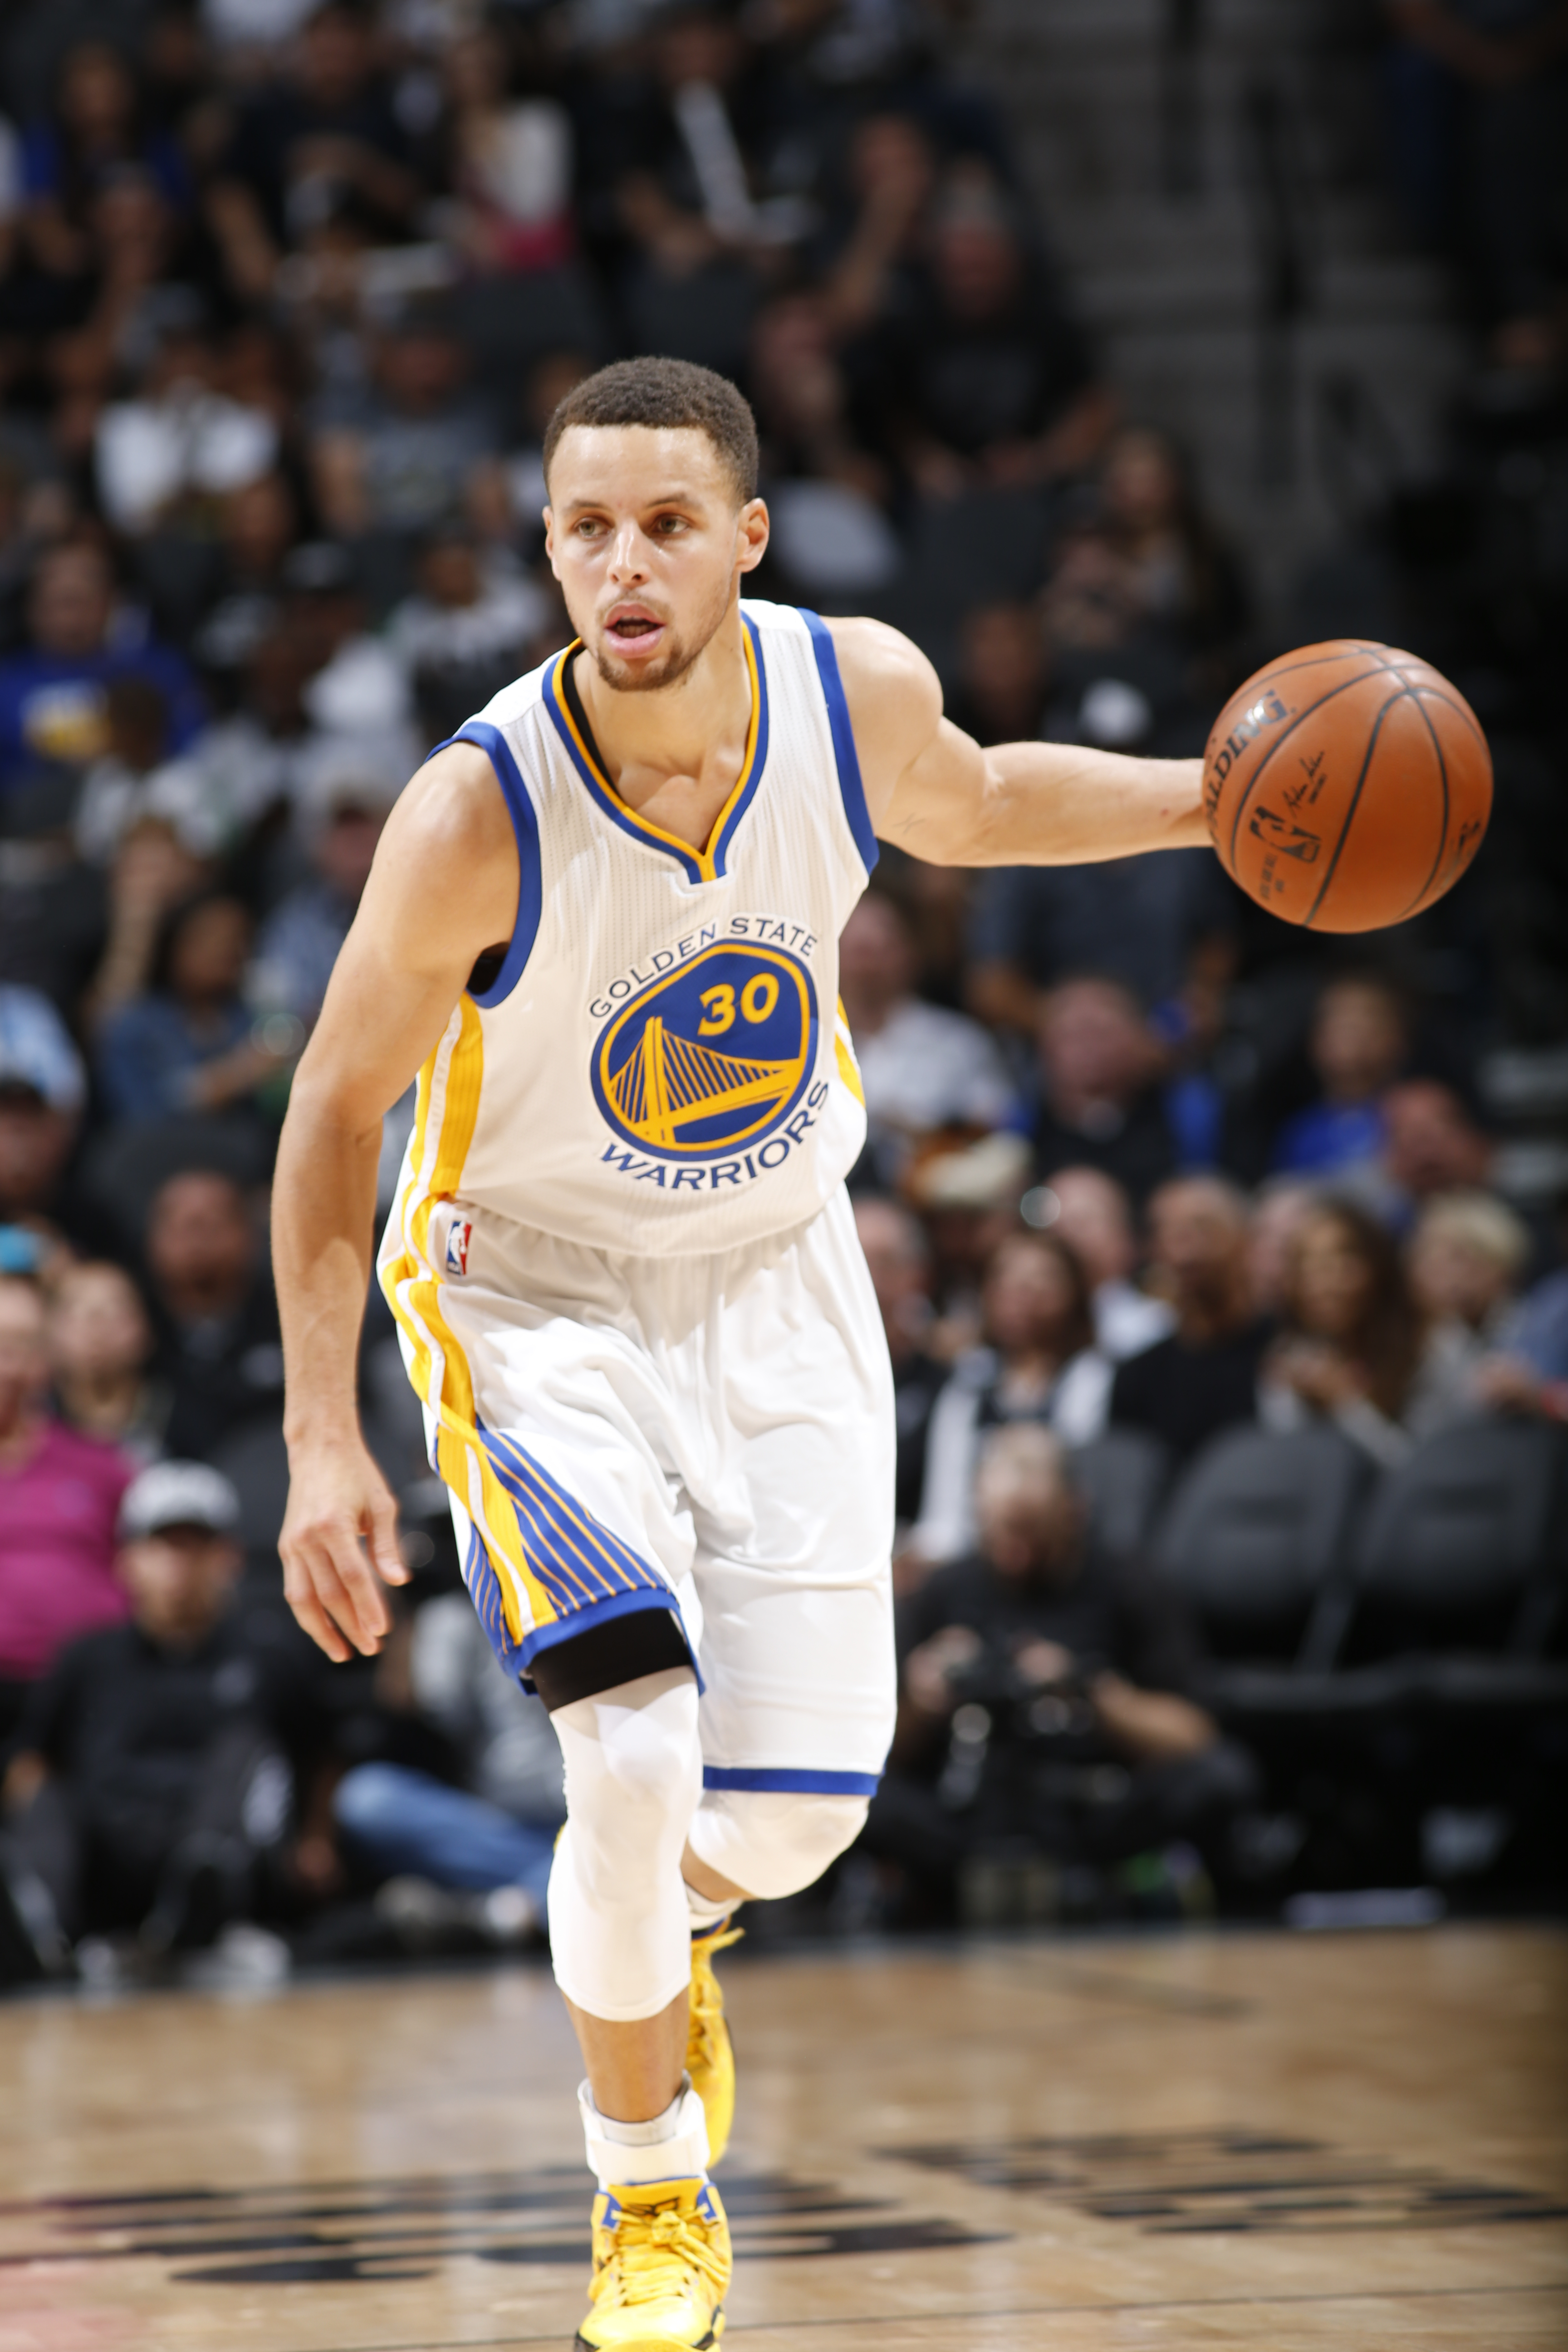 SAN ANTONIO, TX - APRIL 10:  Stephen Curry #30 of the Golden State Warriors handles the ball against the San Antonio Spurs on April 10, 2016 at the AT&T Center in San Antonio, Texas.